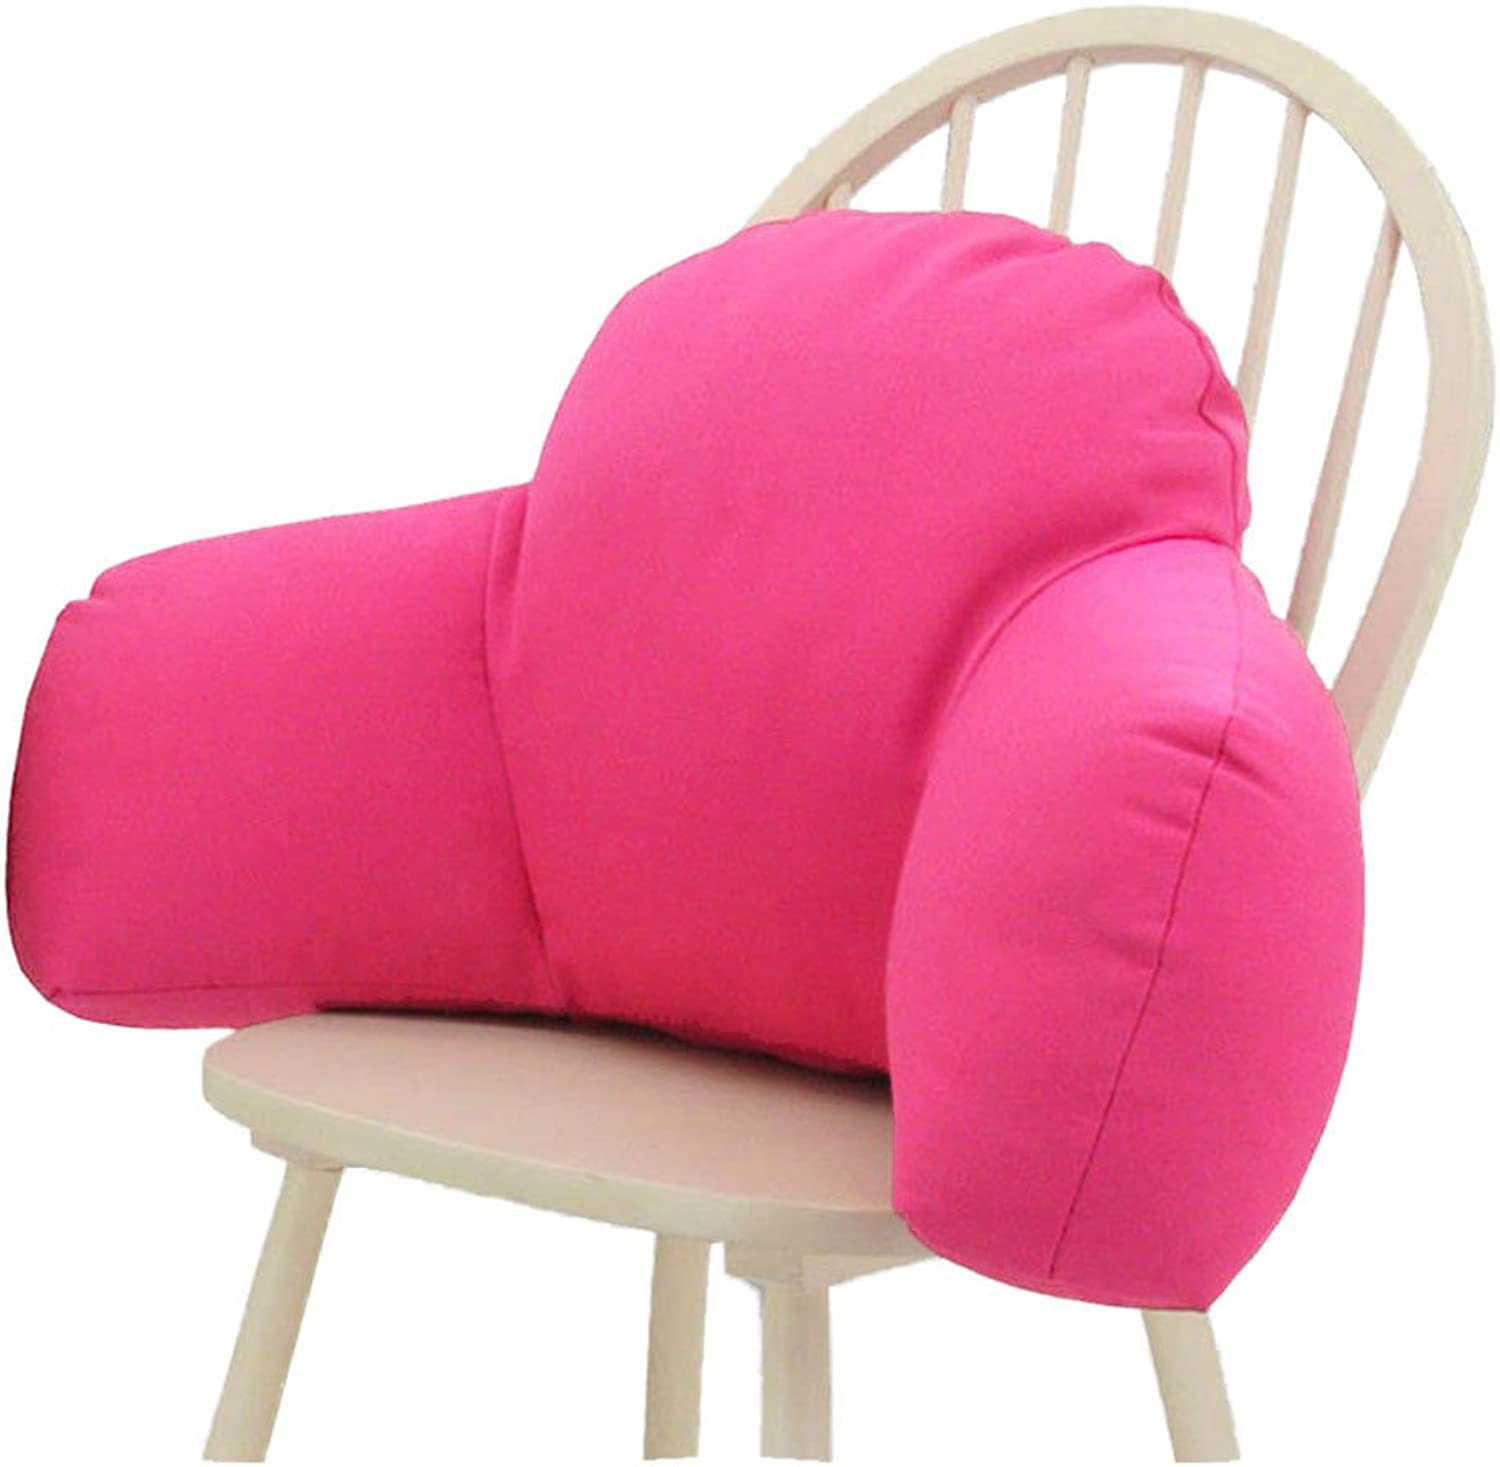 Cushion Office Seat Belt Cushion, Living Room Sofa Waist Pillow Chair Backrest Pad, Headboard Pillow Washable Three-Stage Cushion (color   pink Red, Size   M(603219CM))